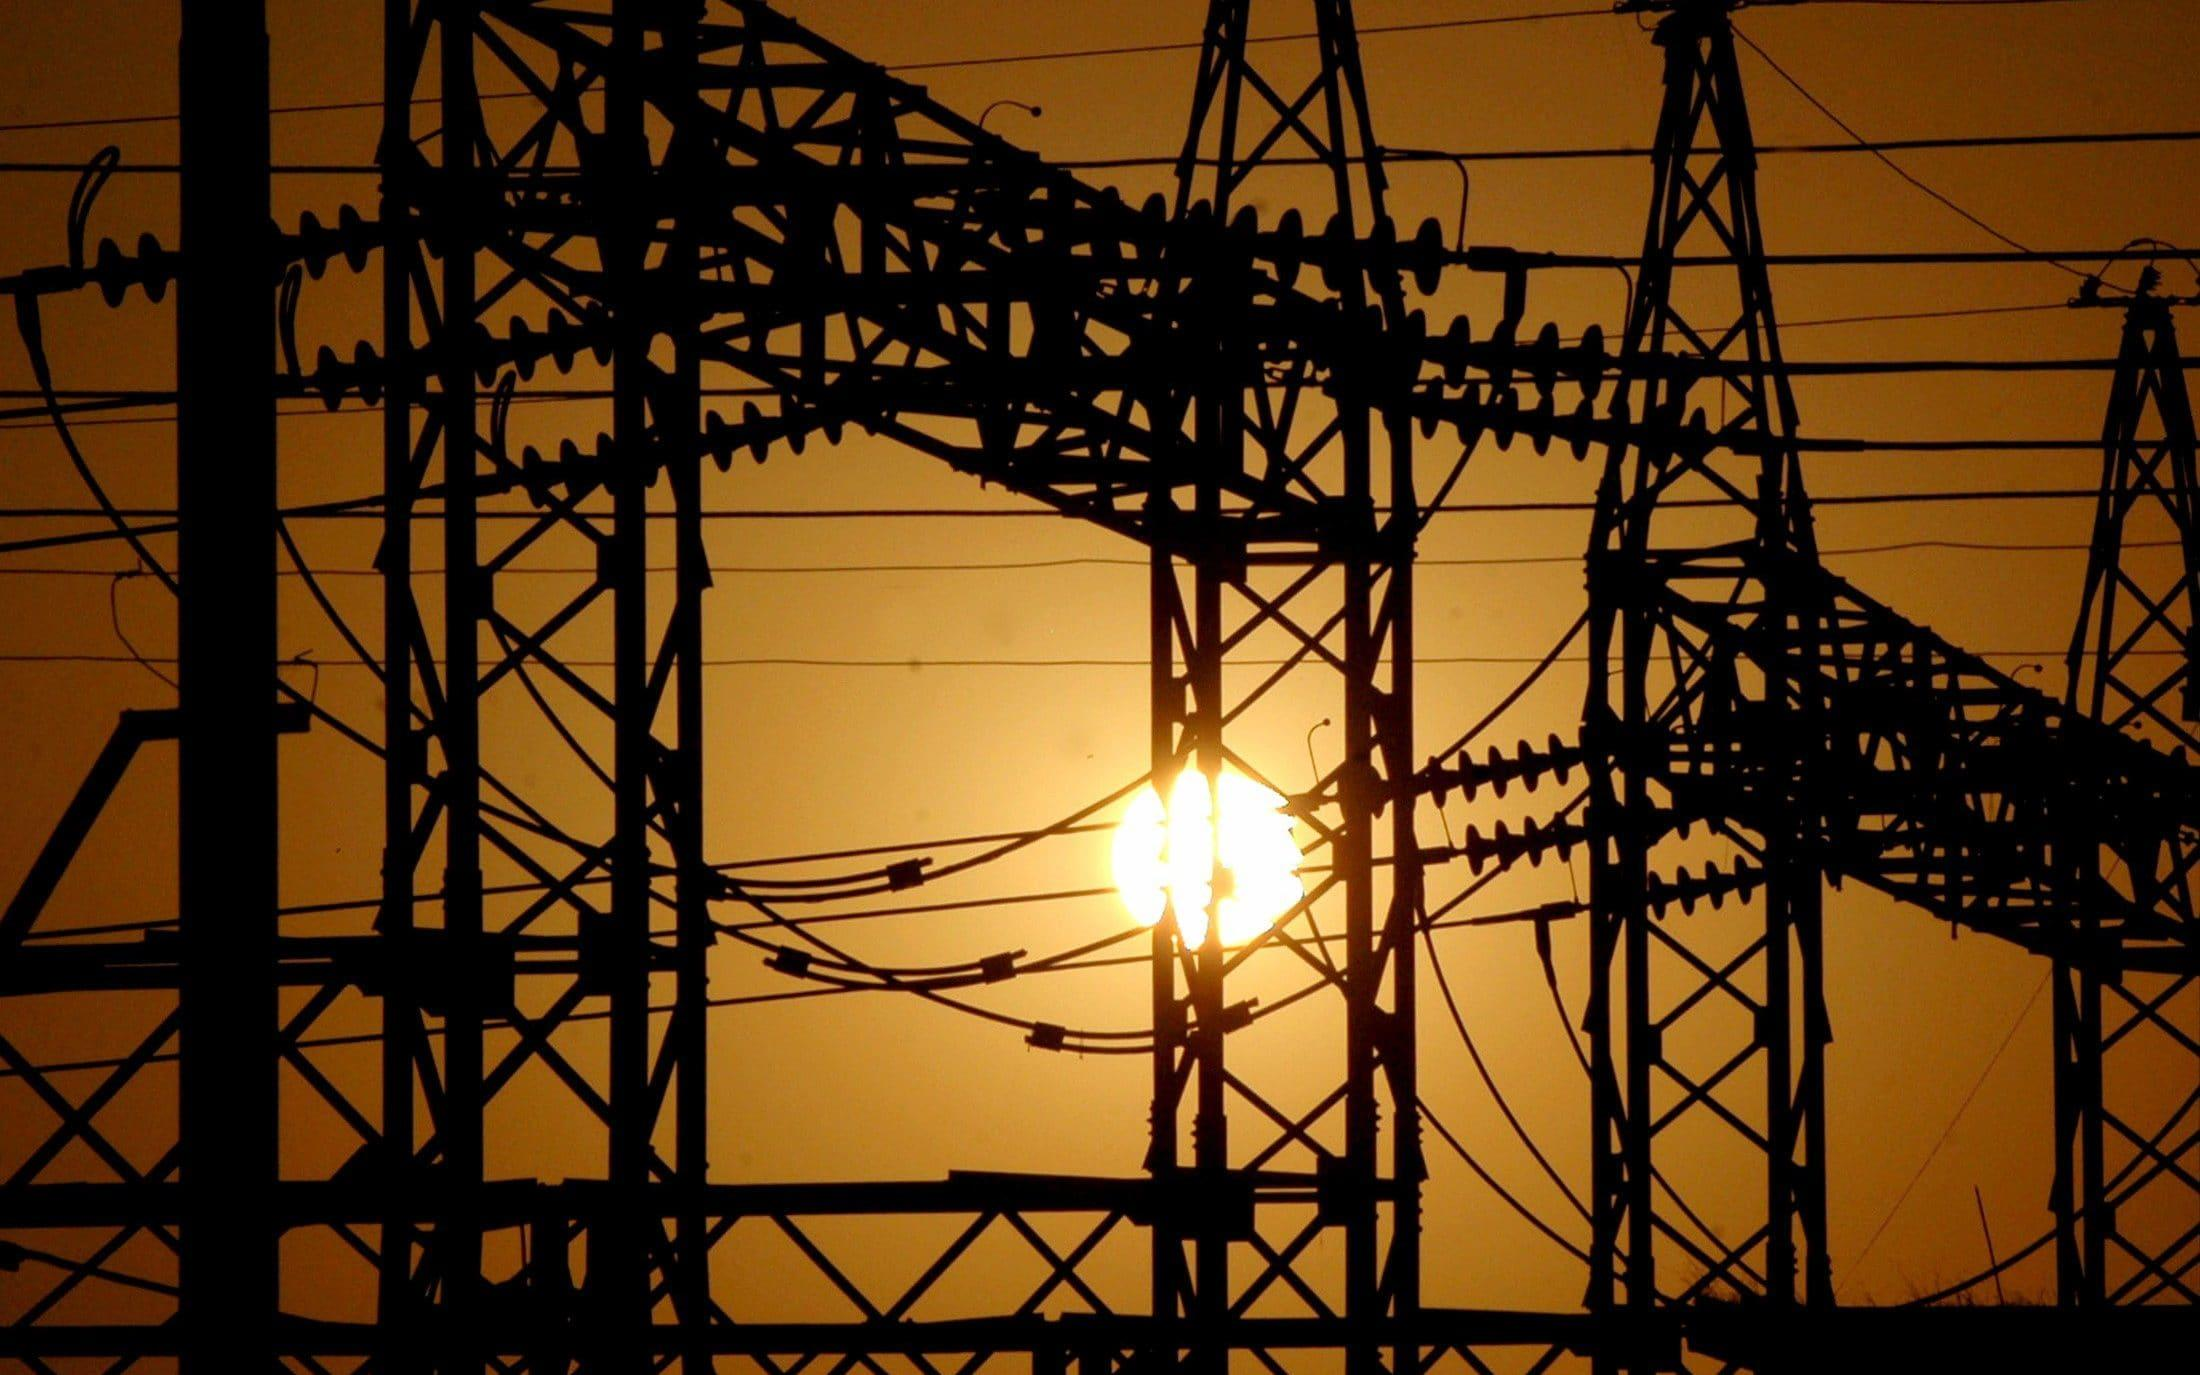 Britain four meals away from anarchy if cyber attack takes out power grid